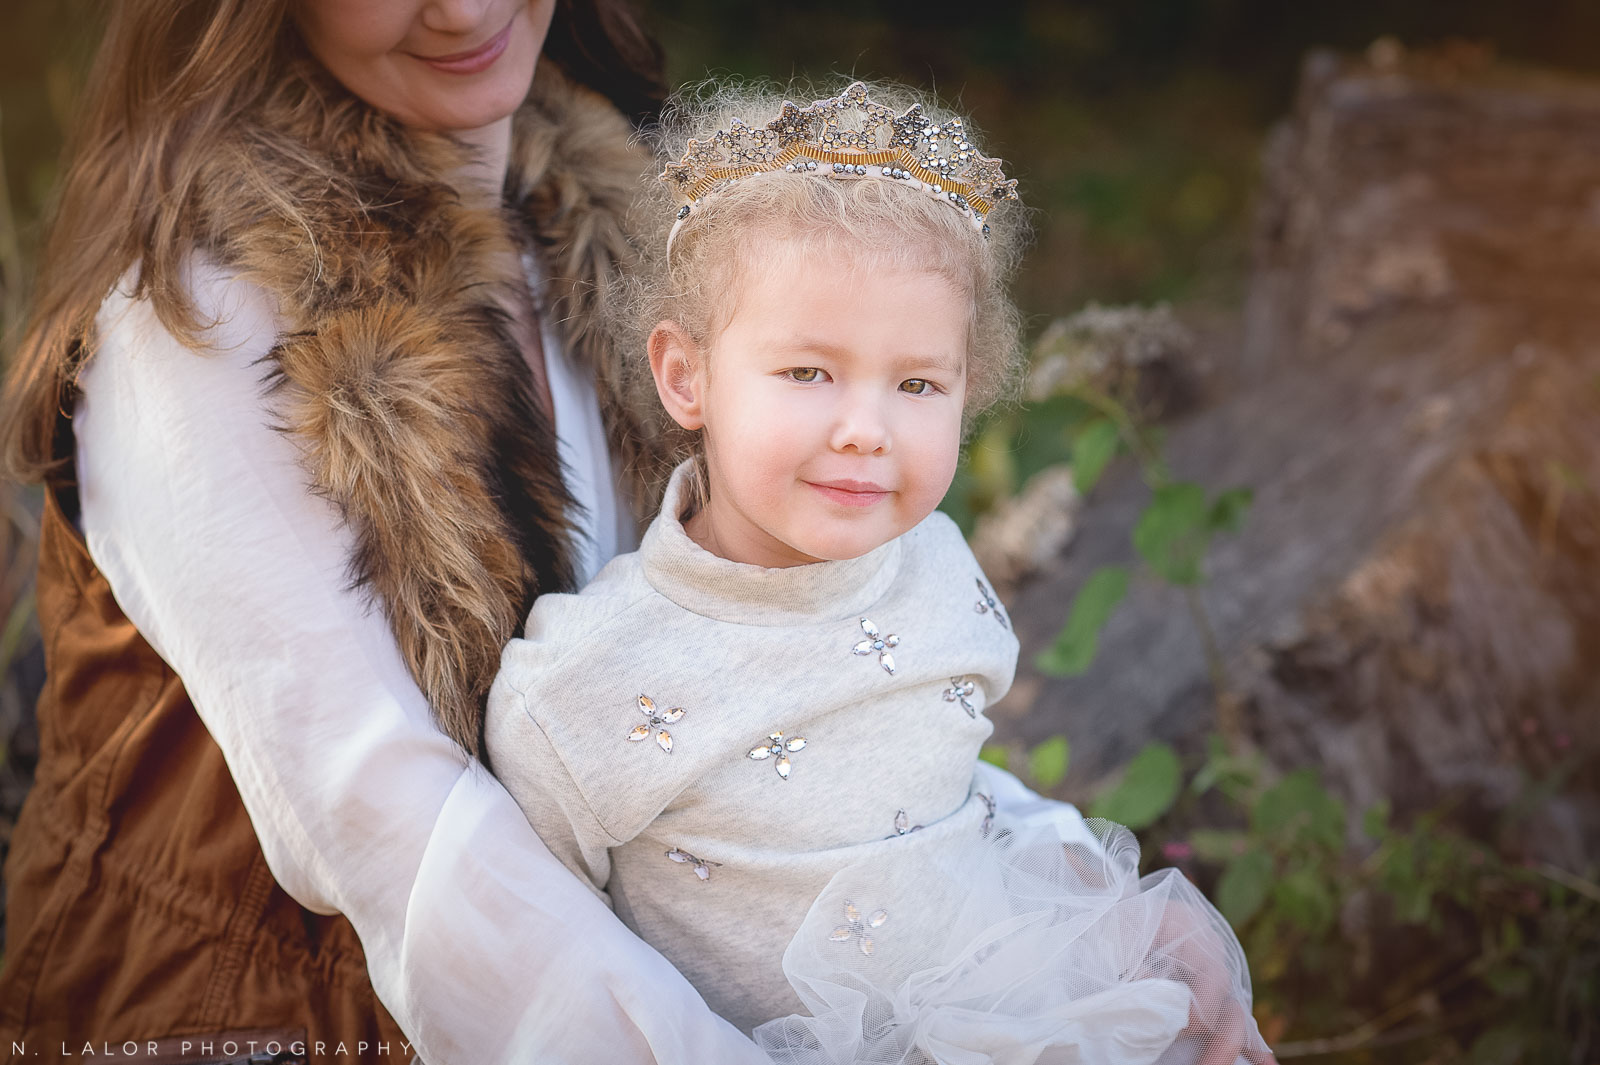 nlalor-photography-2014-styled-family-life-new-canaan-nature-center-fall-10.jpg